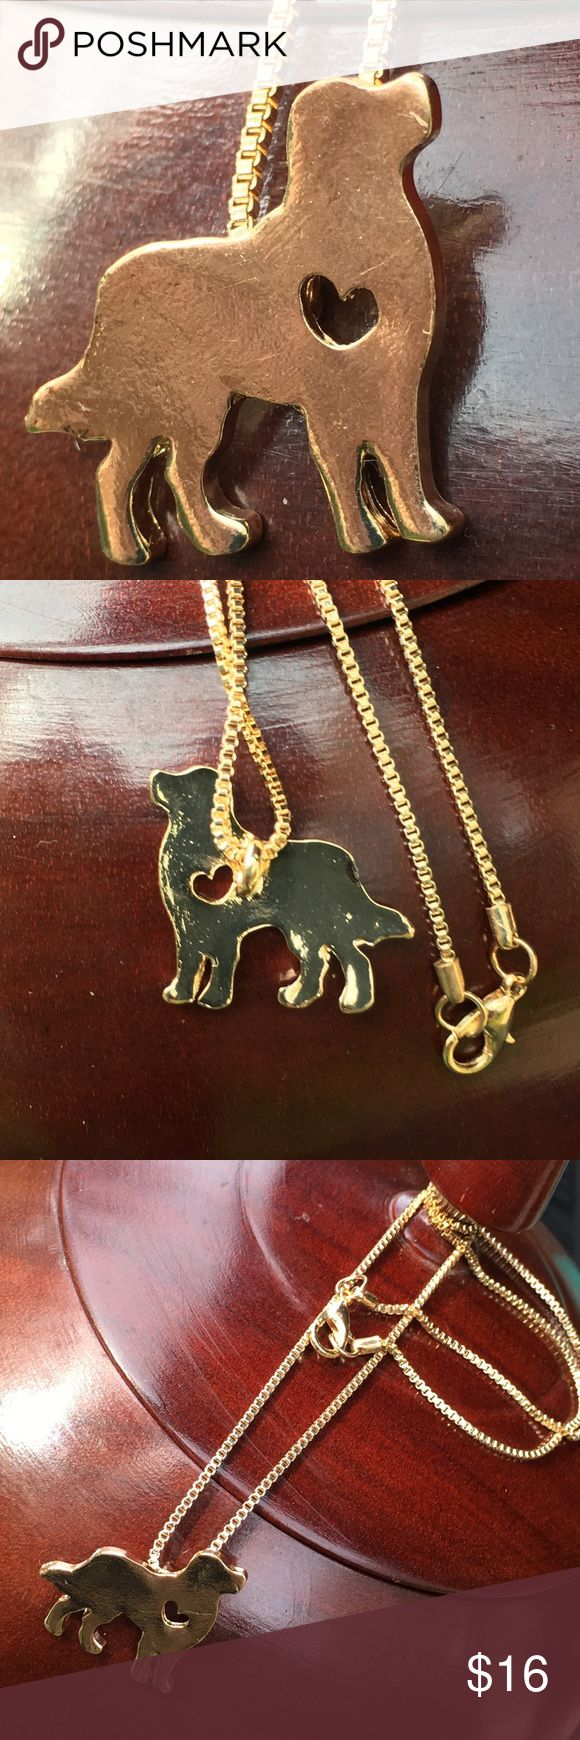 Gold Golden retriever ❤️️ love Adorable doggie necklace. On a box chain.  Perfect gift for any dog lover. love ❤️ necklace. This silhouette can represent many  breeds golden retriever, yellow Labrador,  beagle, hound, retriever,  mastiff, or your favorite mutt. Boutique items - prices are firm unless bundled. Jewelry Necklaces